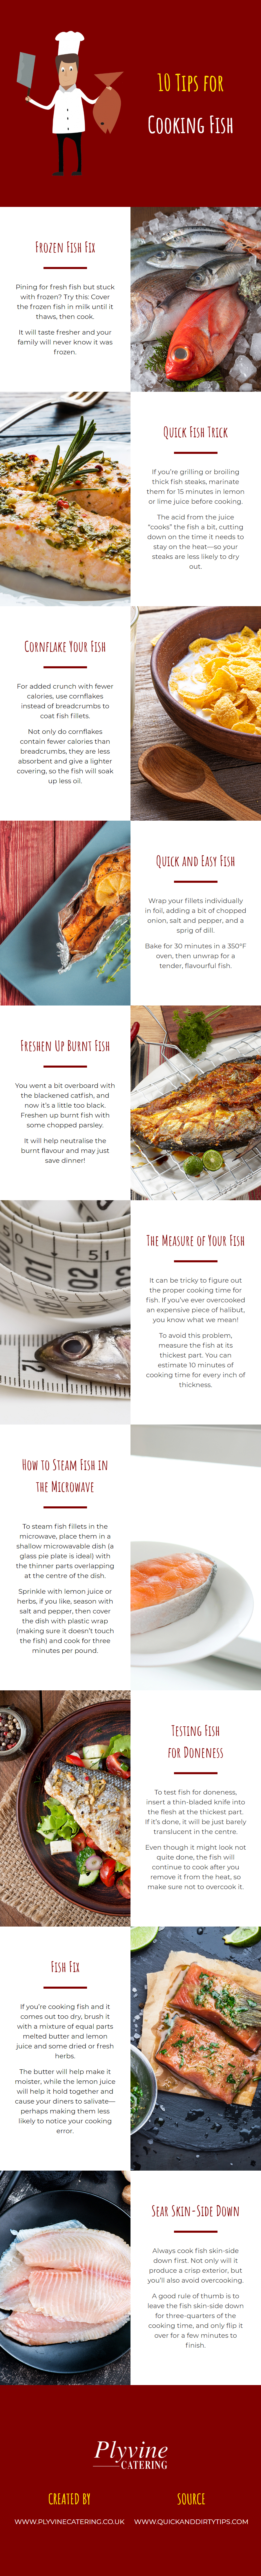 10 Tips for Cooking Fish